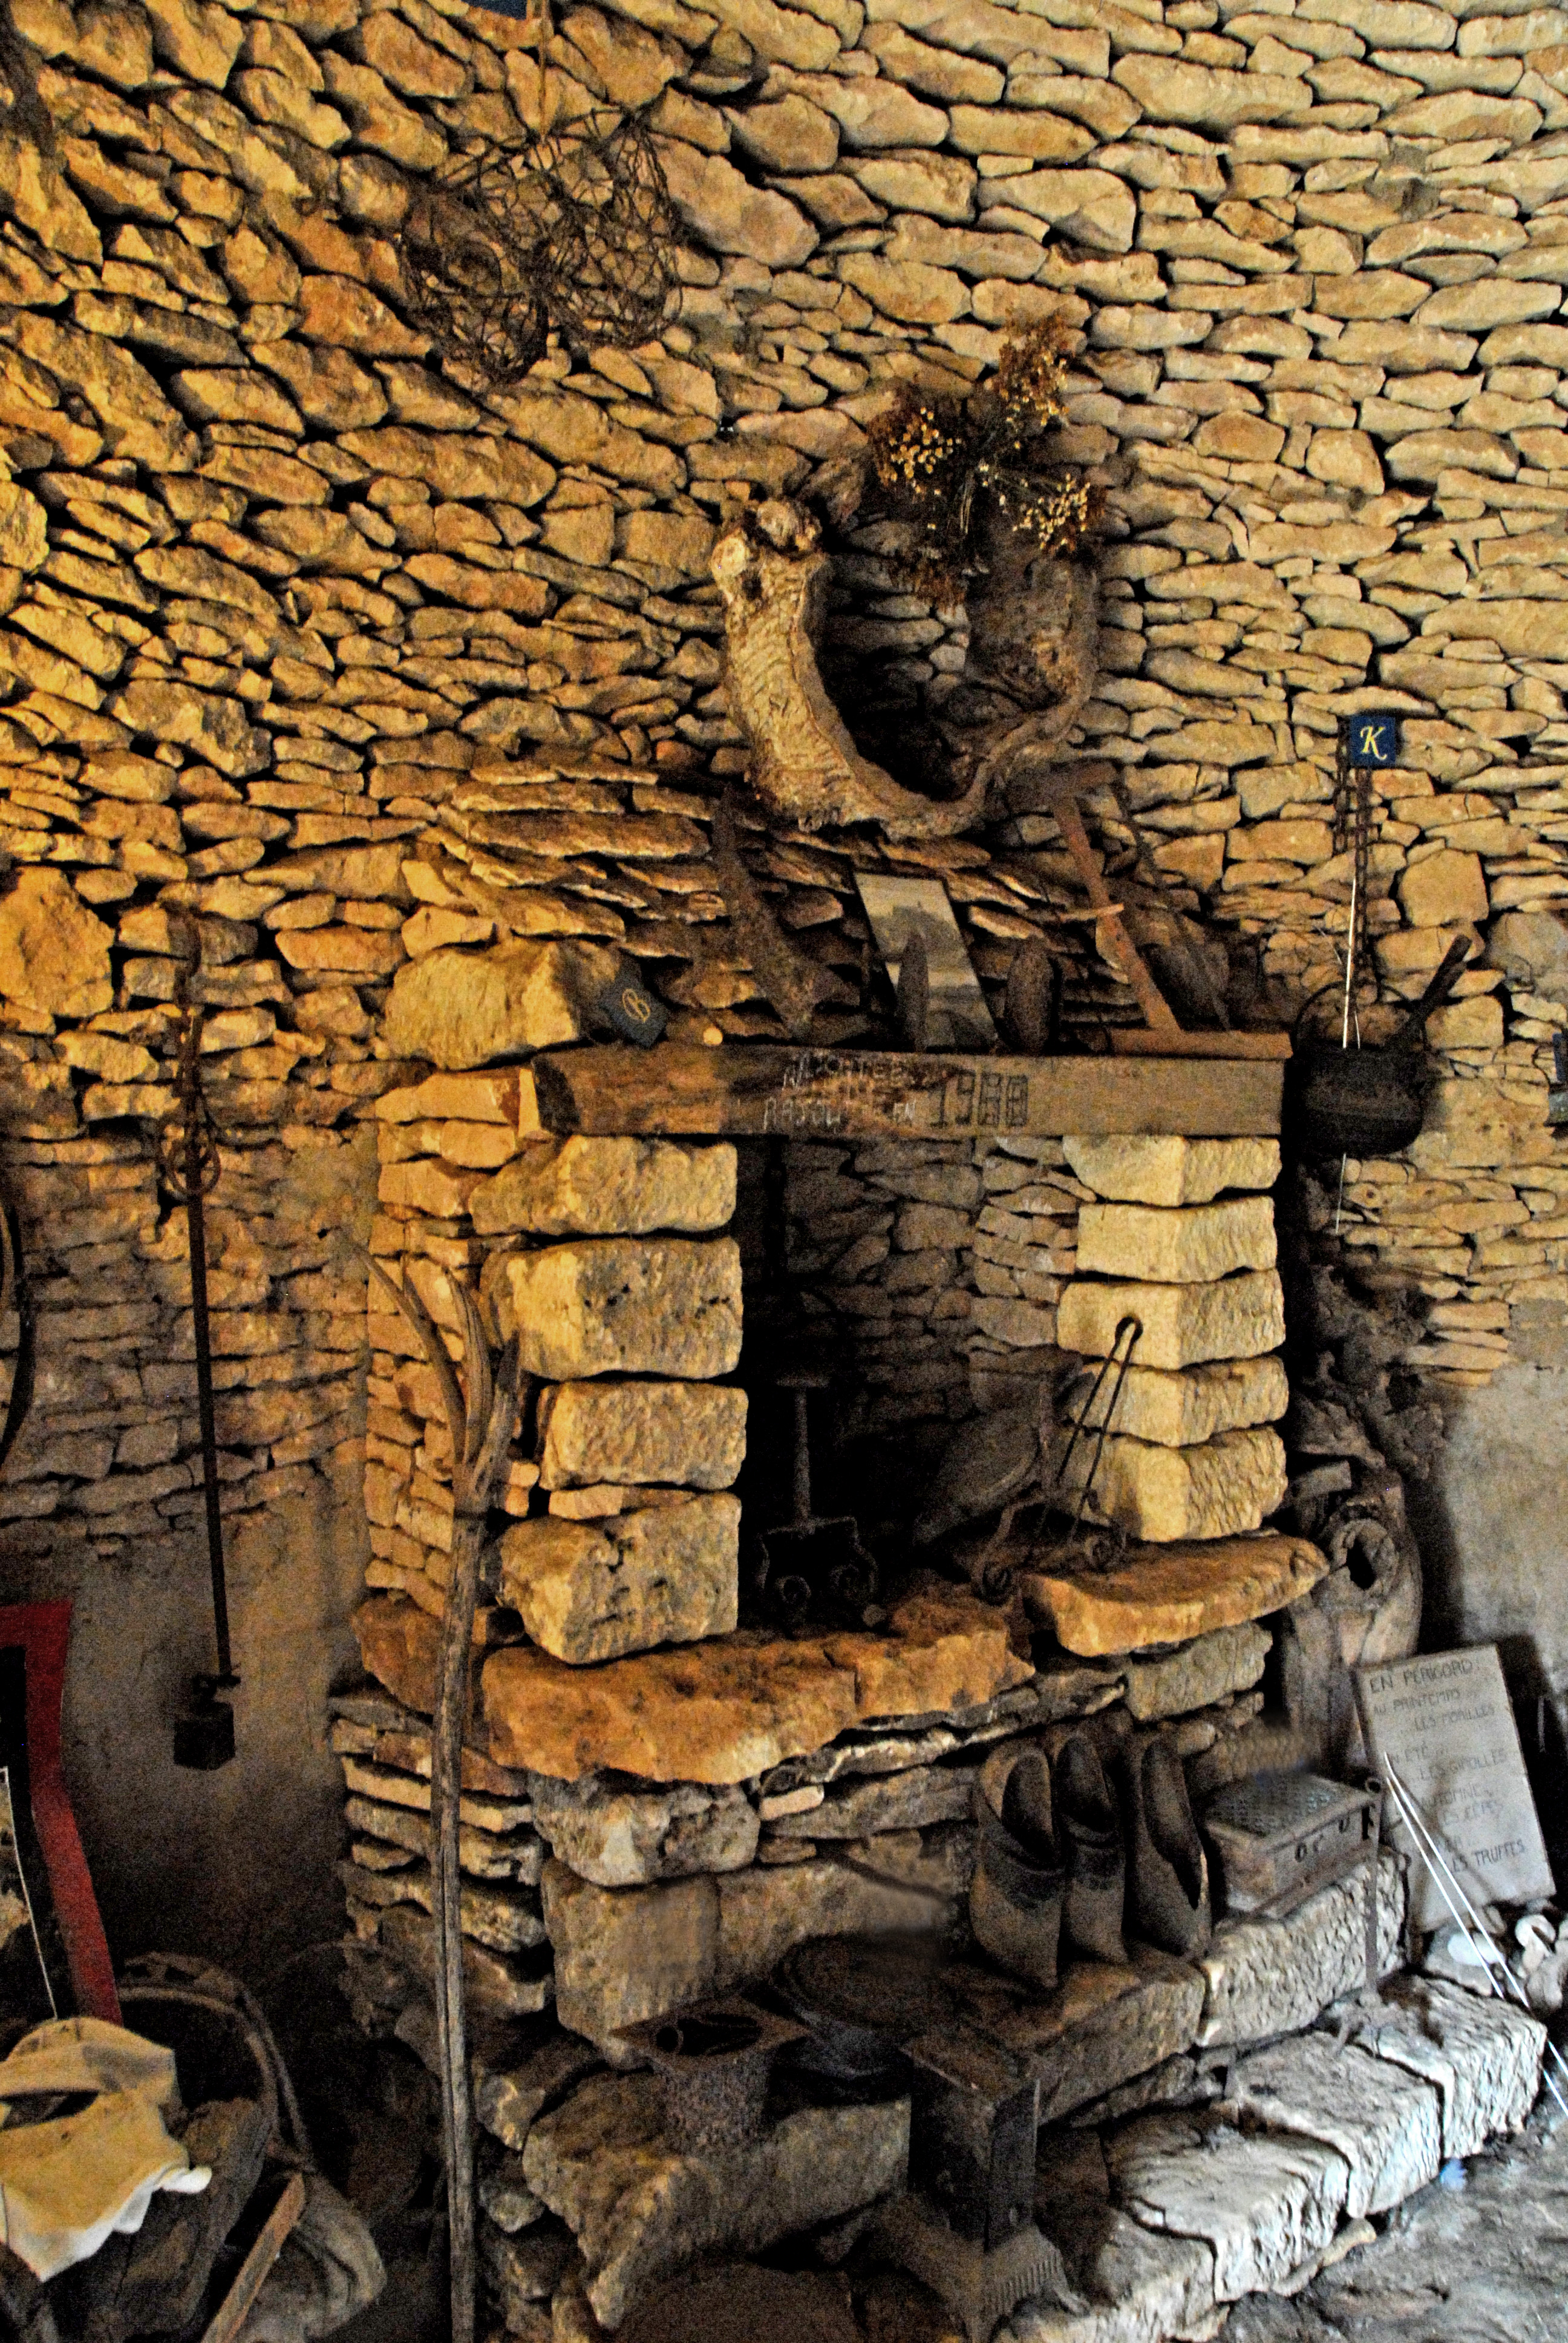 FileWorkshop with fireplace in dry stone cottage Francejpg  Wikimedia Commons